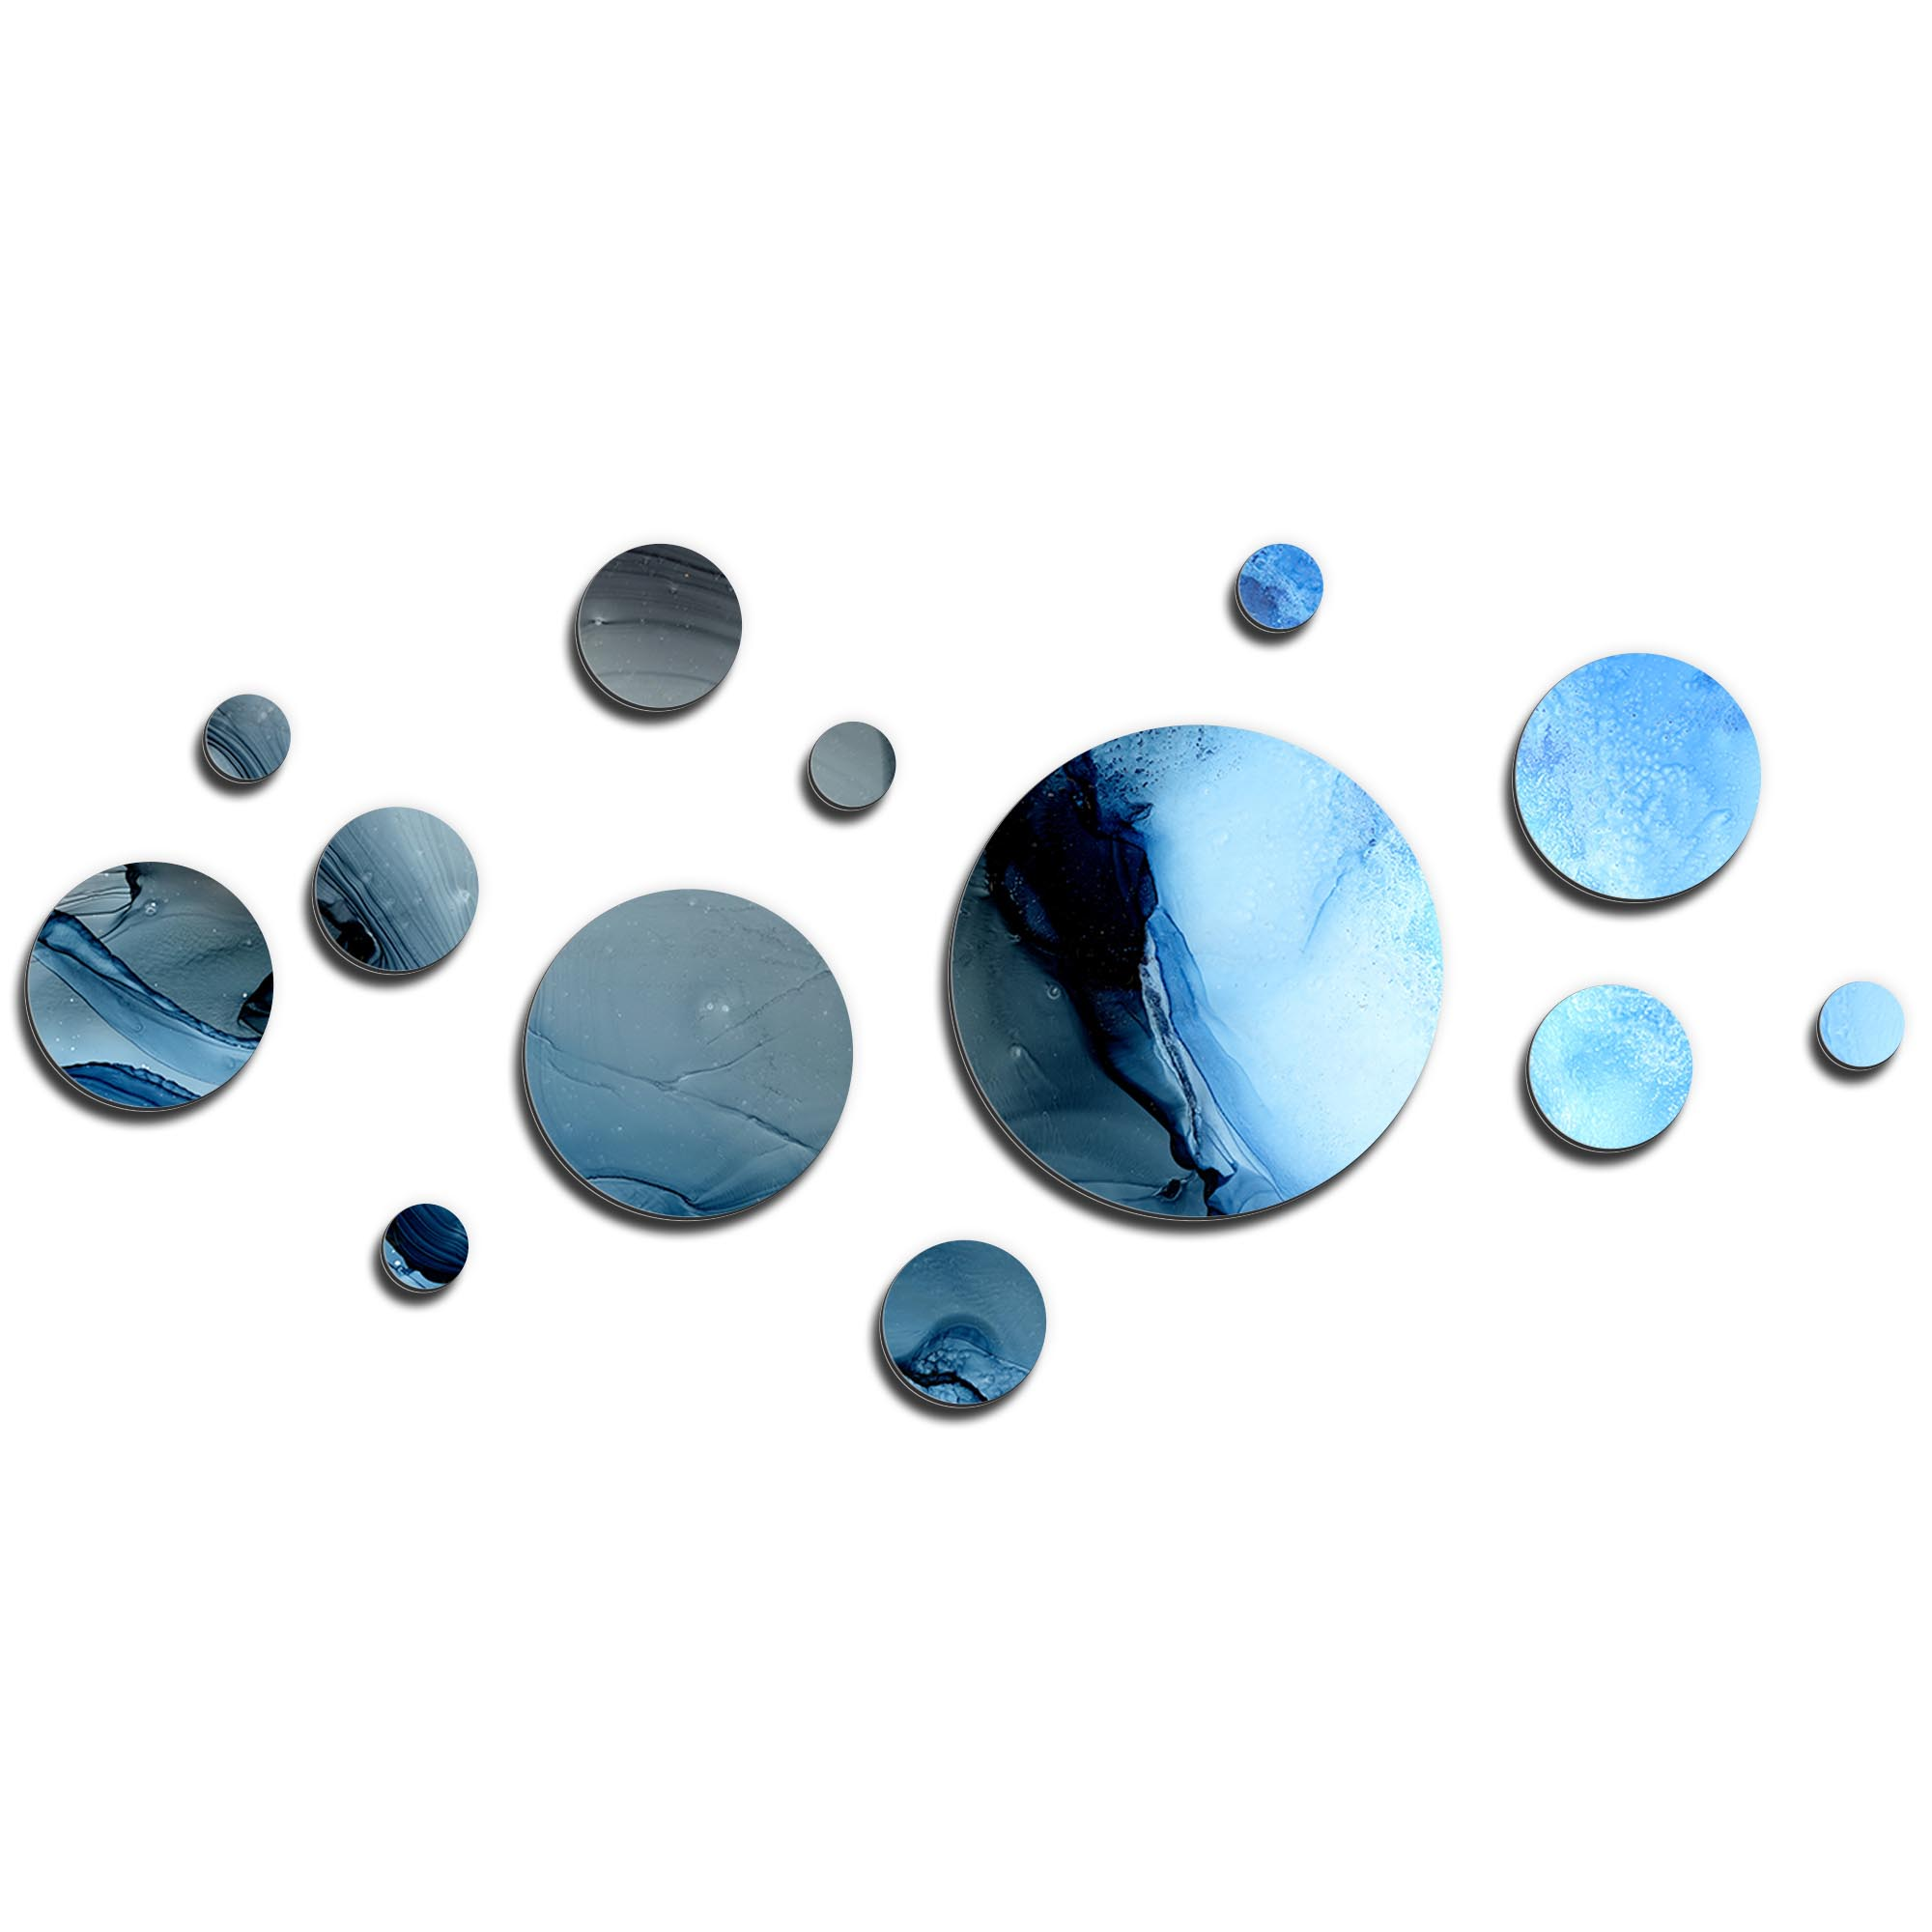 NAY 'Suspended Blue' 70in x 32in Circles Abstract Art on Aluminum Composite